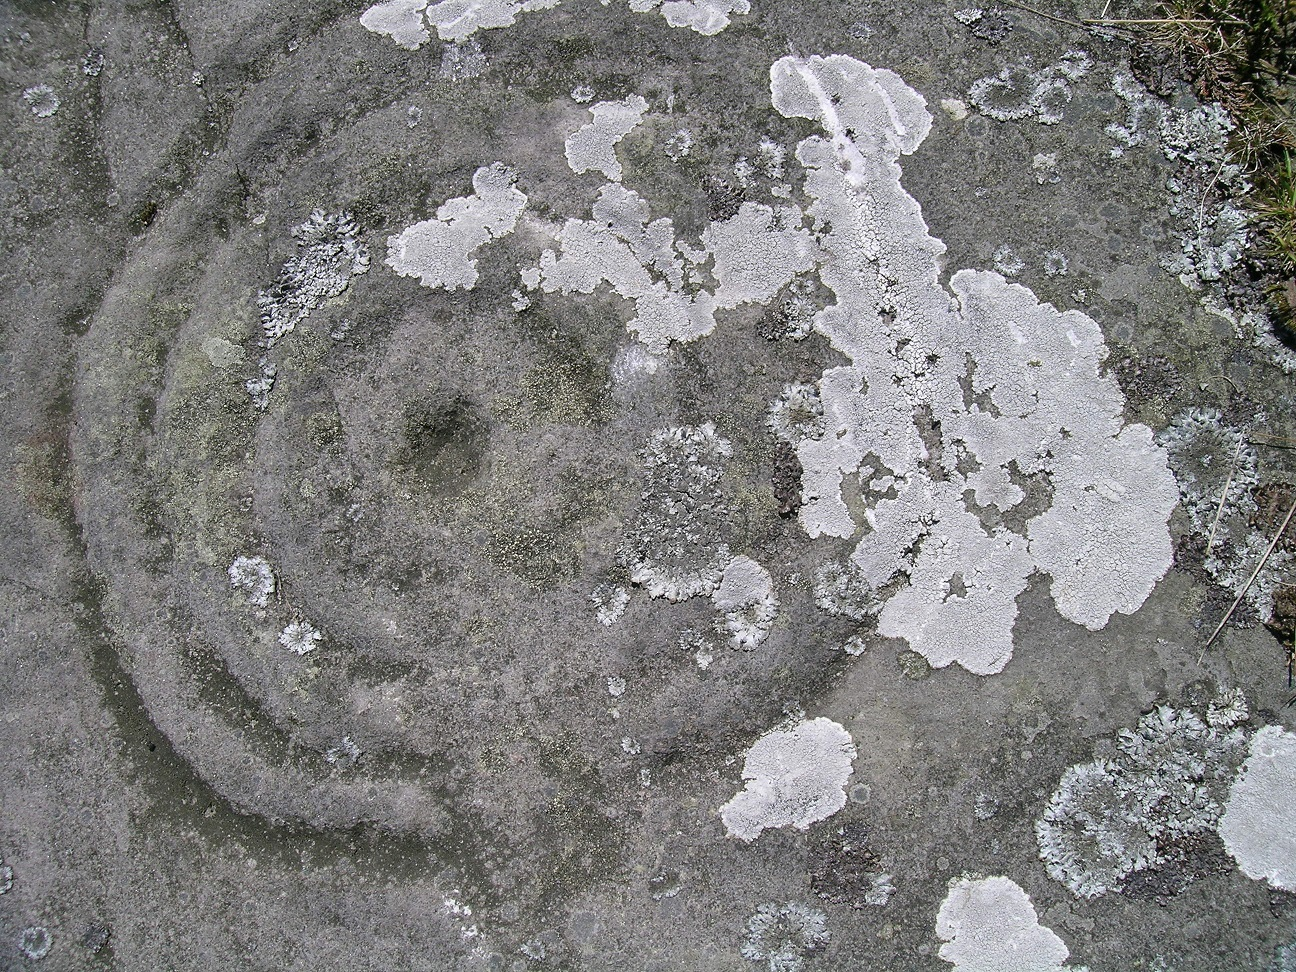 Lichen growing on carved motif